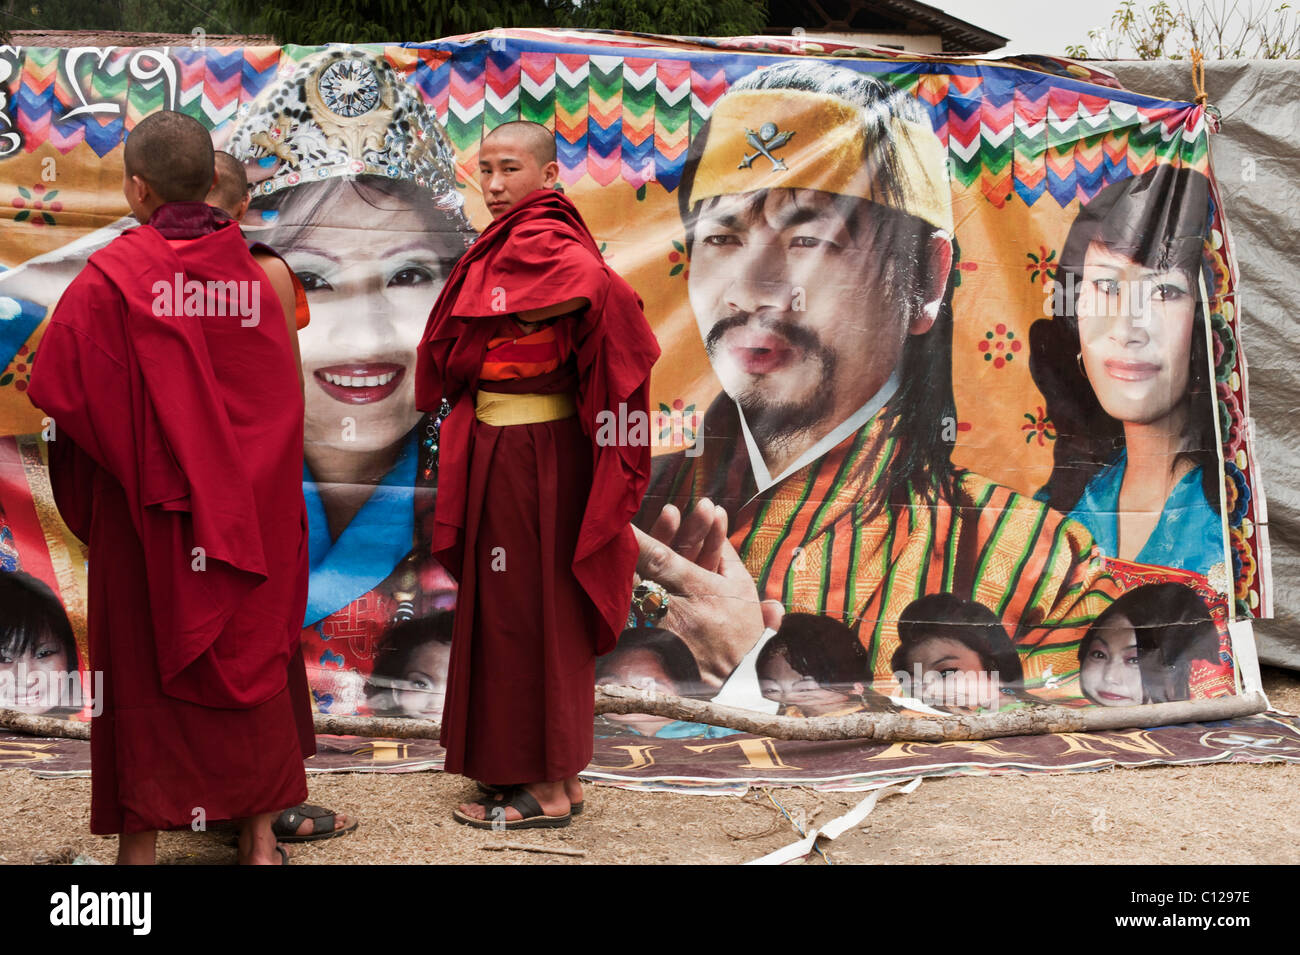 Buddhist monks ponder the virtues of buying a ticket to a new film being shown in a tent at a festival in rural - Stock Image